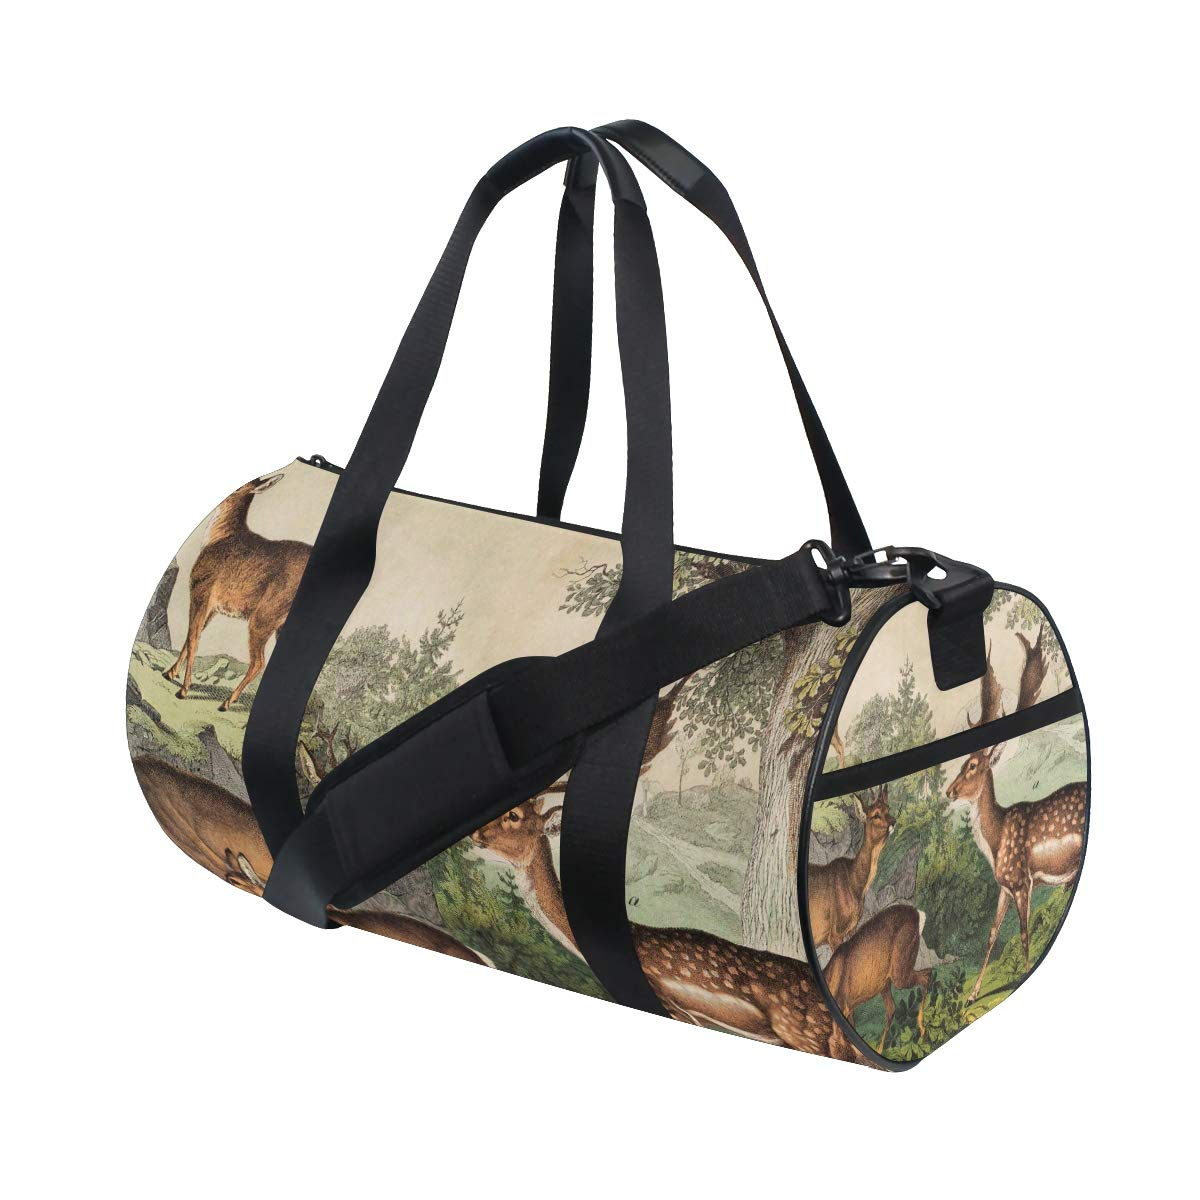 Deer Unisex's Duffel Bag Travel Tote Luggage Bag Gym Sports Luggage Bag by EVERUI (Image #1)